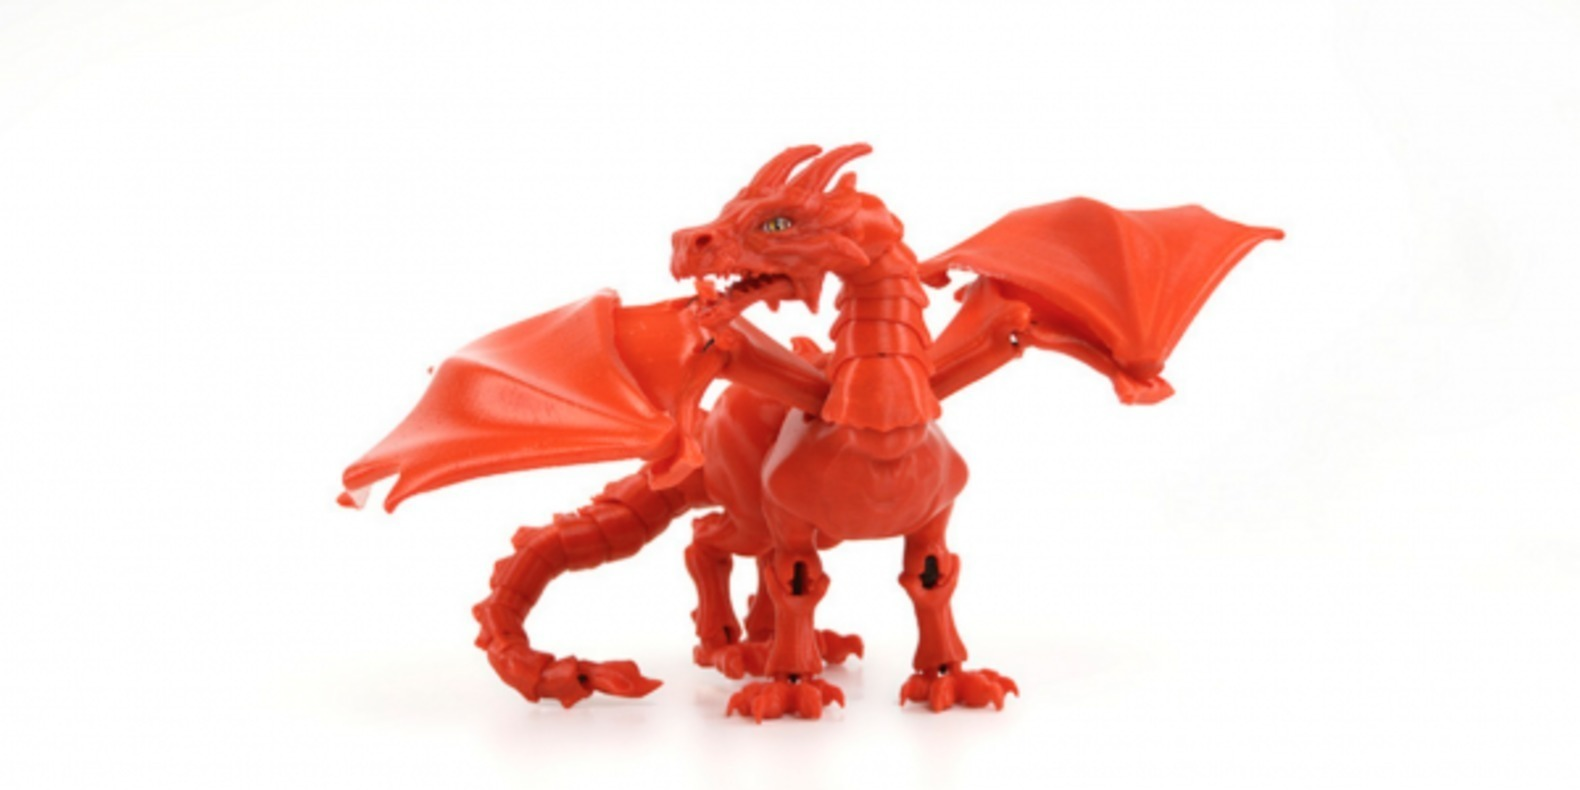 http://fichier3d.fr/wp-content/uploads/2016/02/Braq-dragon-jointed-3D-printed-impression-3D-fichier-STL-sonia-verdu-BQ-BQlabs-5.png